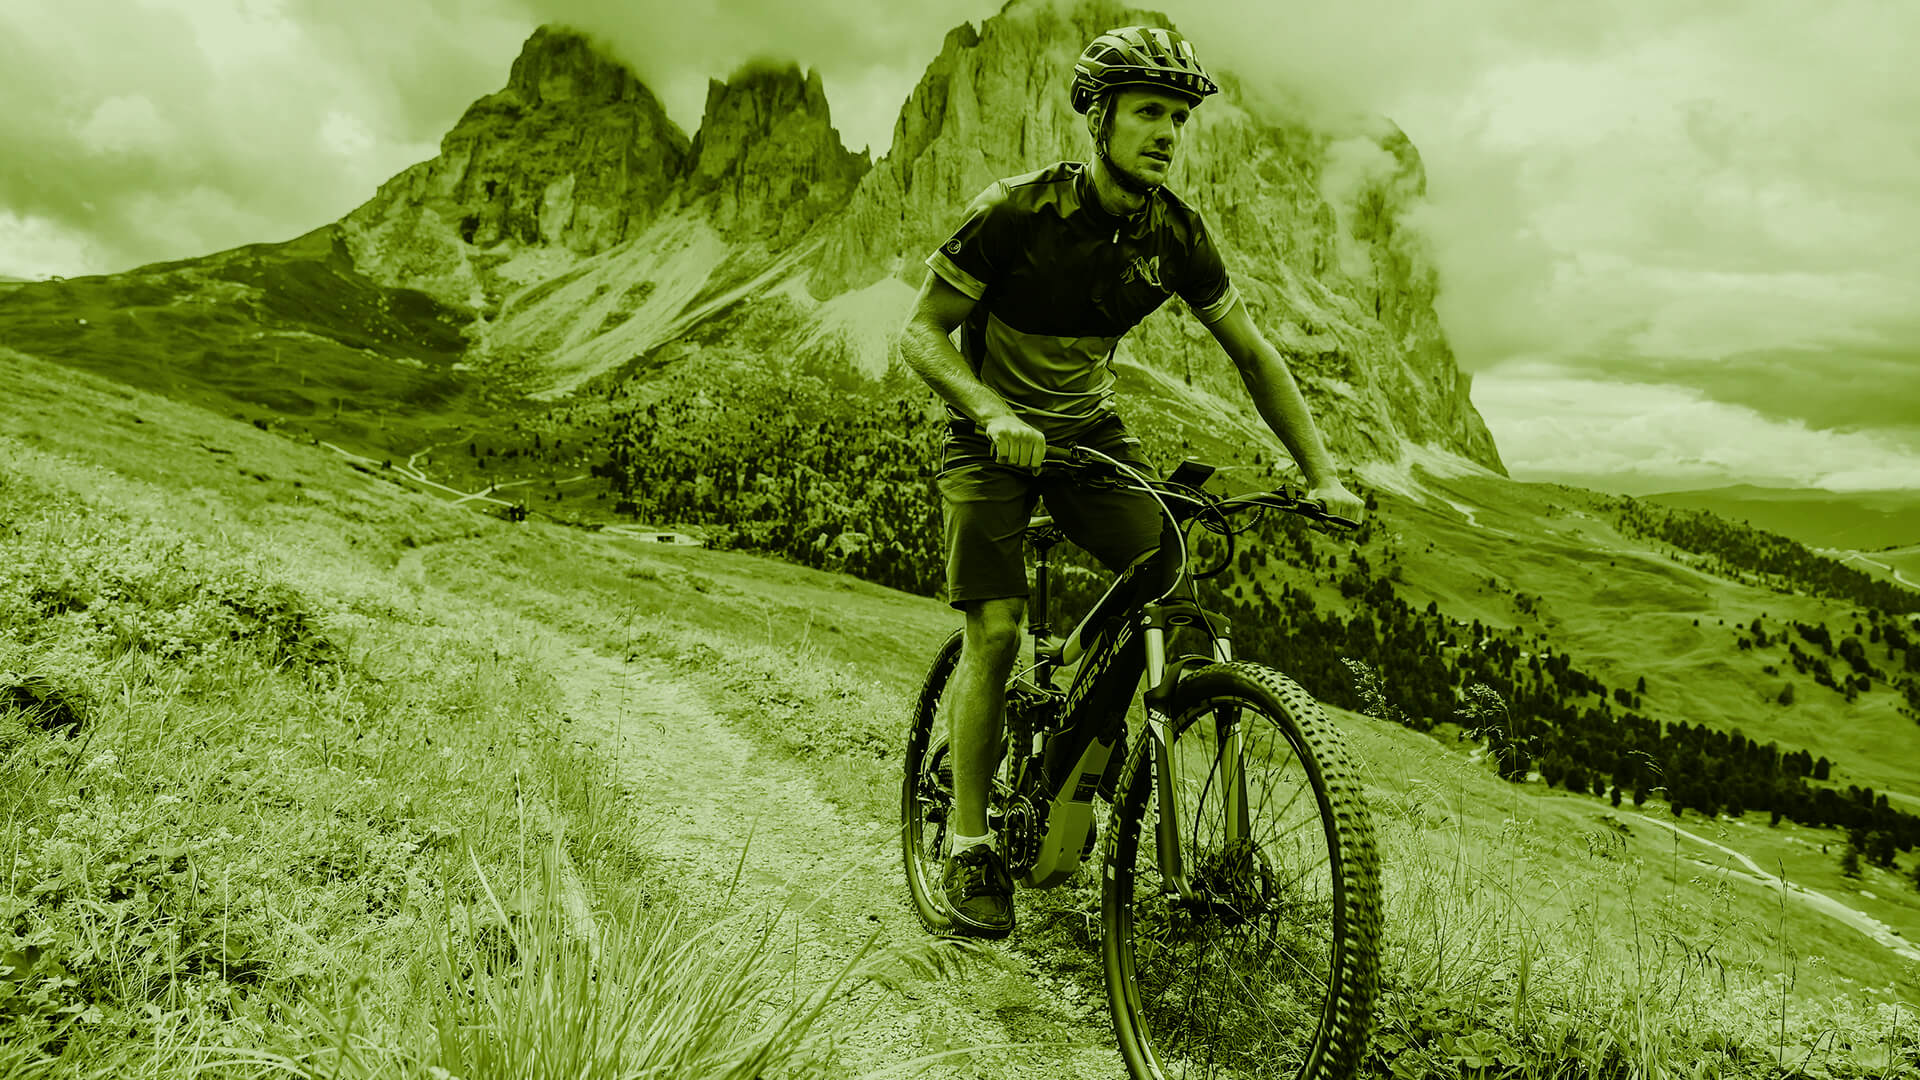 haibike-2016-dolomiten-me-photo-3781_dup_slider